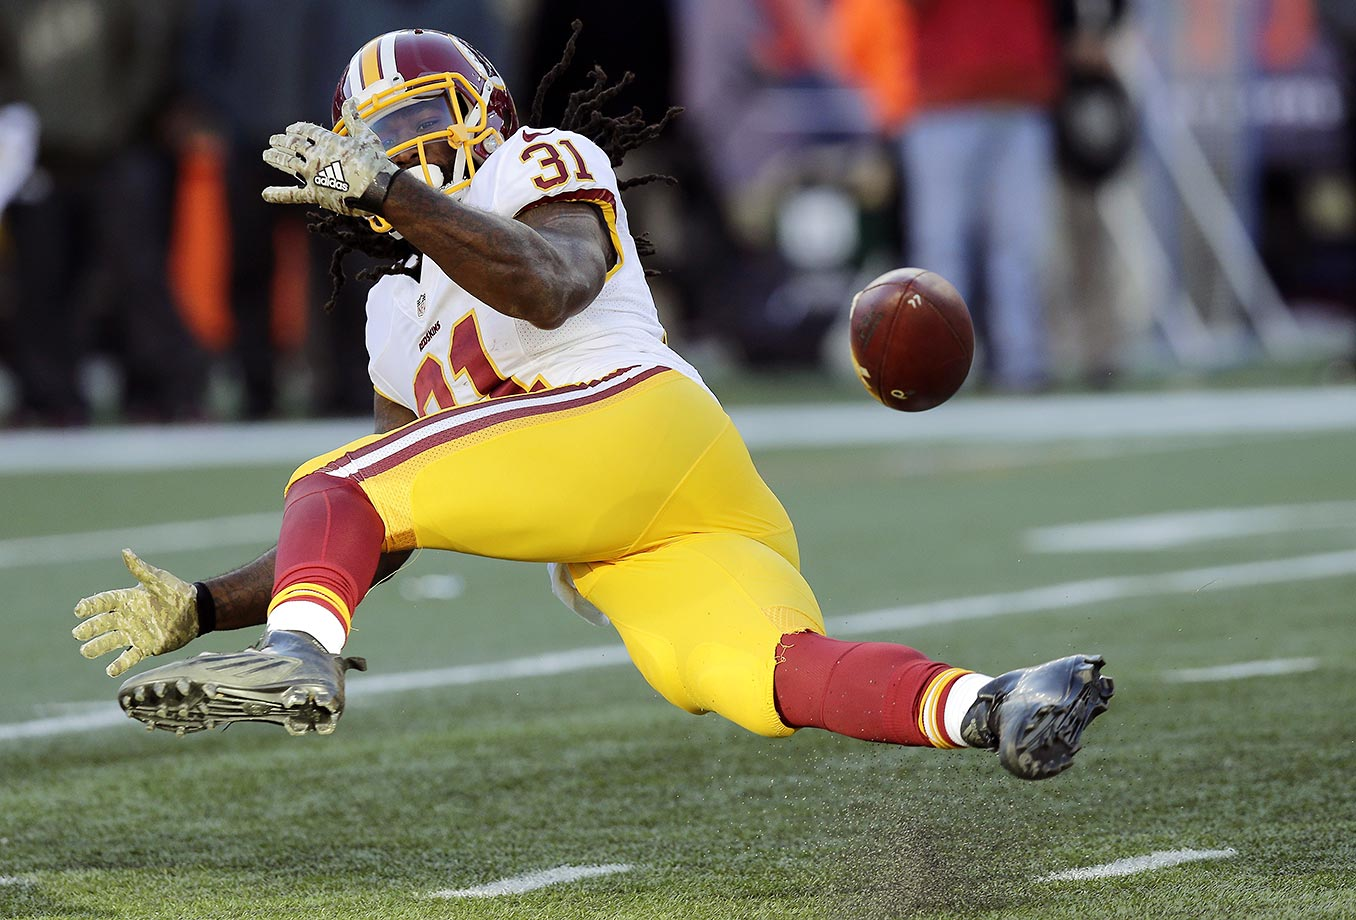 Matt Jones of the Washington Redskins was unable to catch this pass against the New England Patriots.